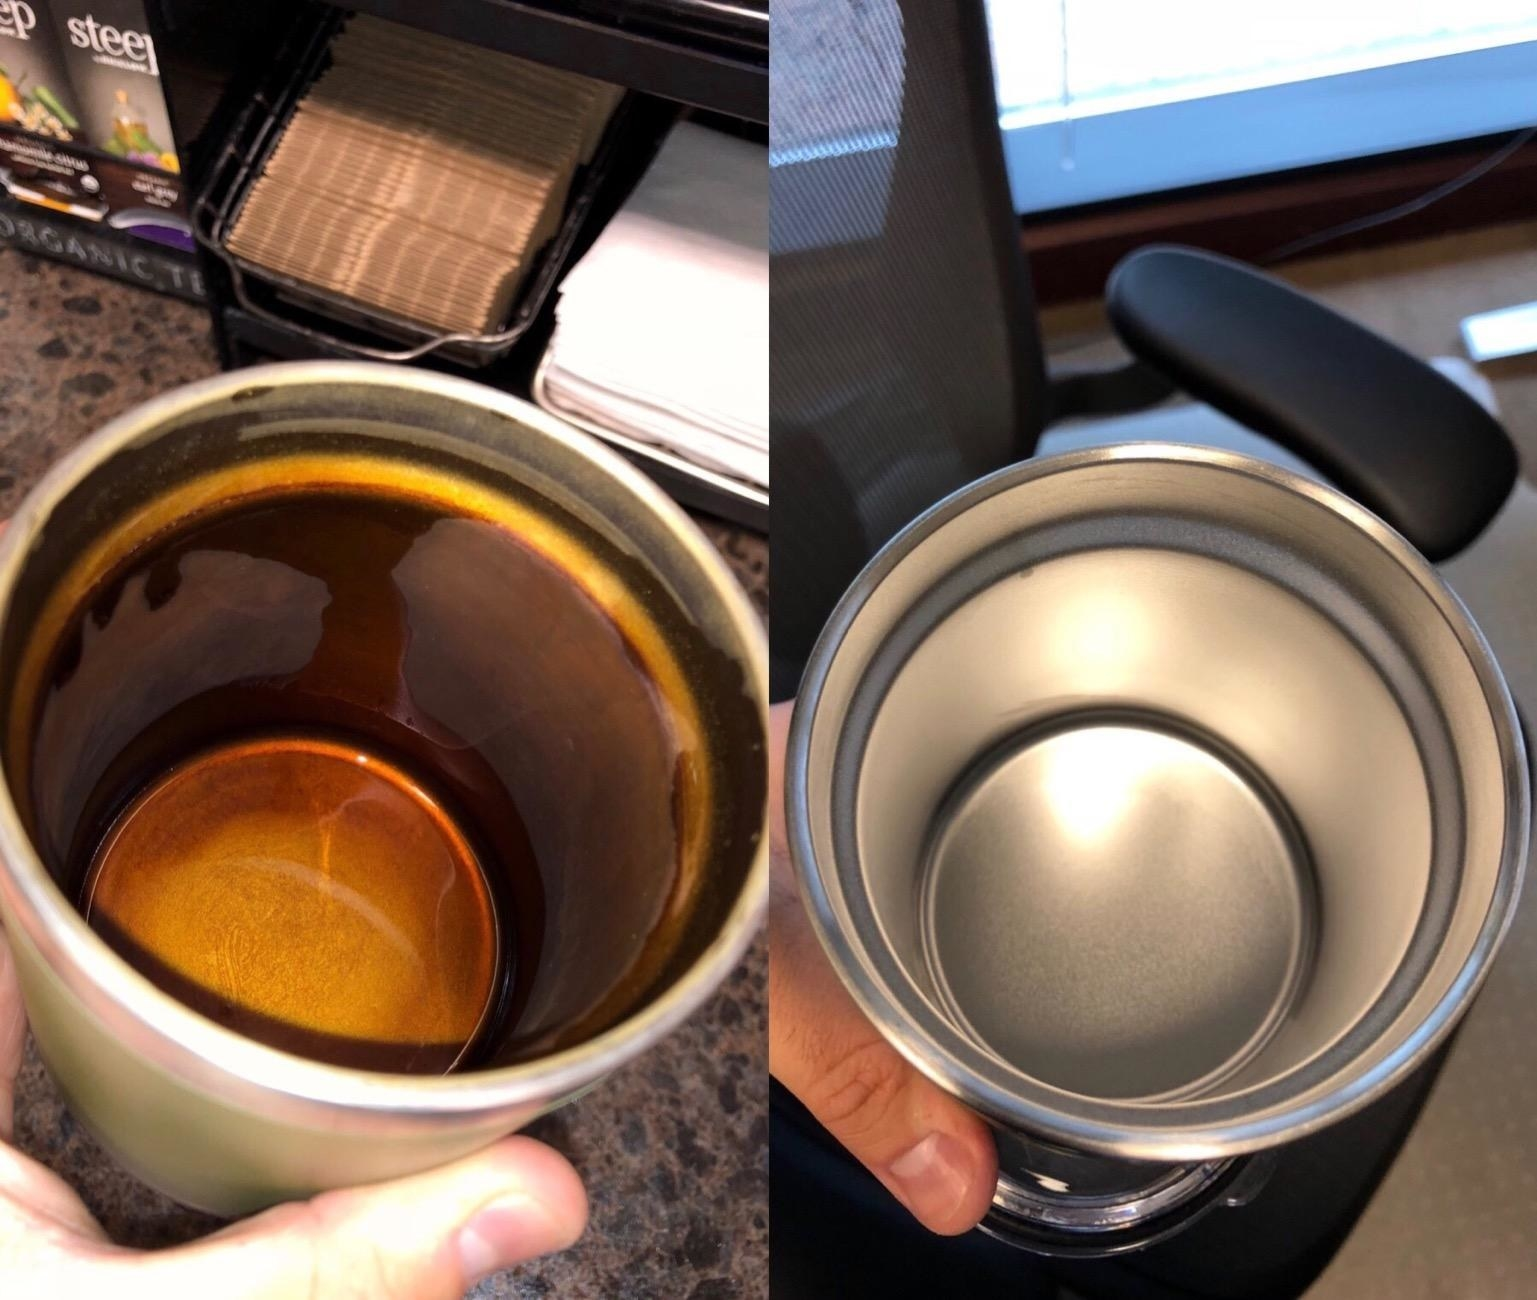 a before and after showing a bottle well cleaned of water stains after the product was used